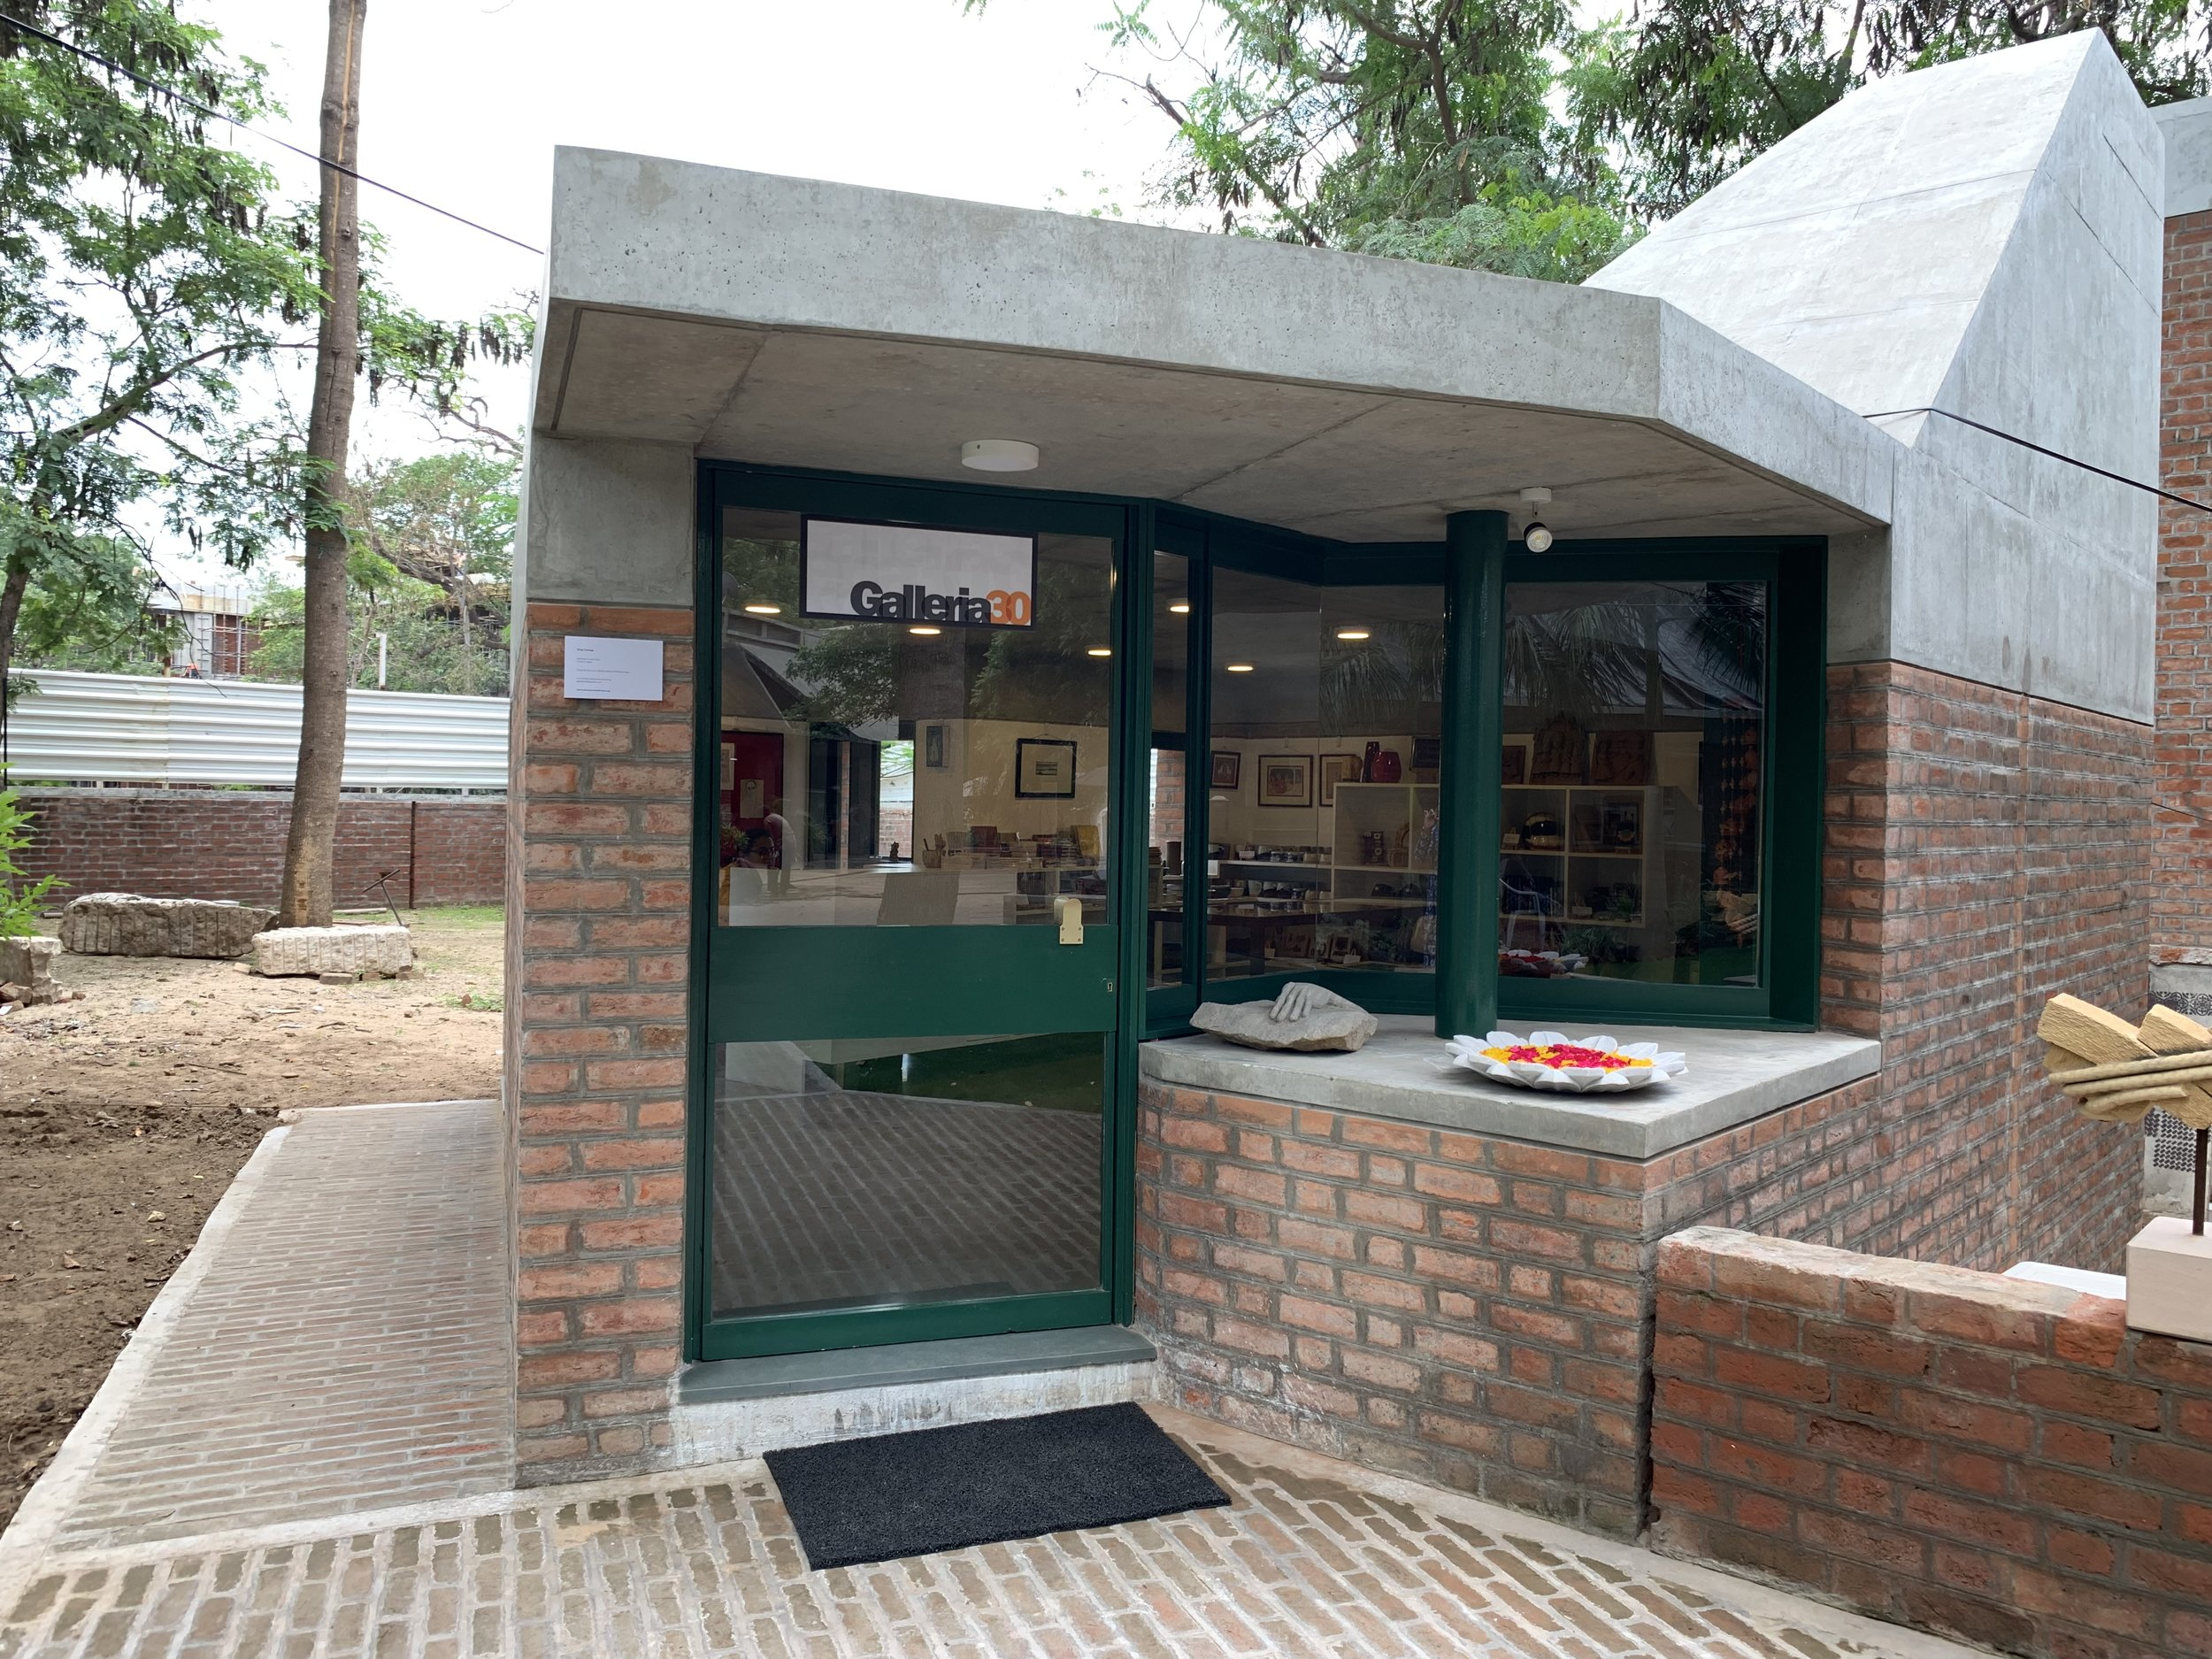 The art shop was opened in May 2014 and it has now shifted to its new location across the Kanoria Gallery for Arts. Galleria 30 aims to create a bridge between artists and buyers.  Find out more.